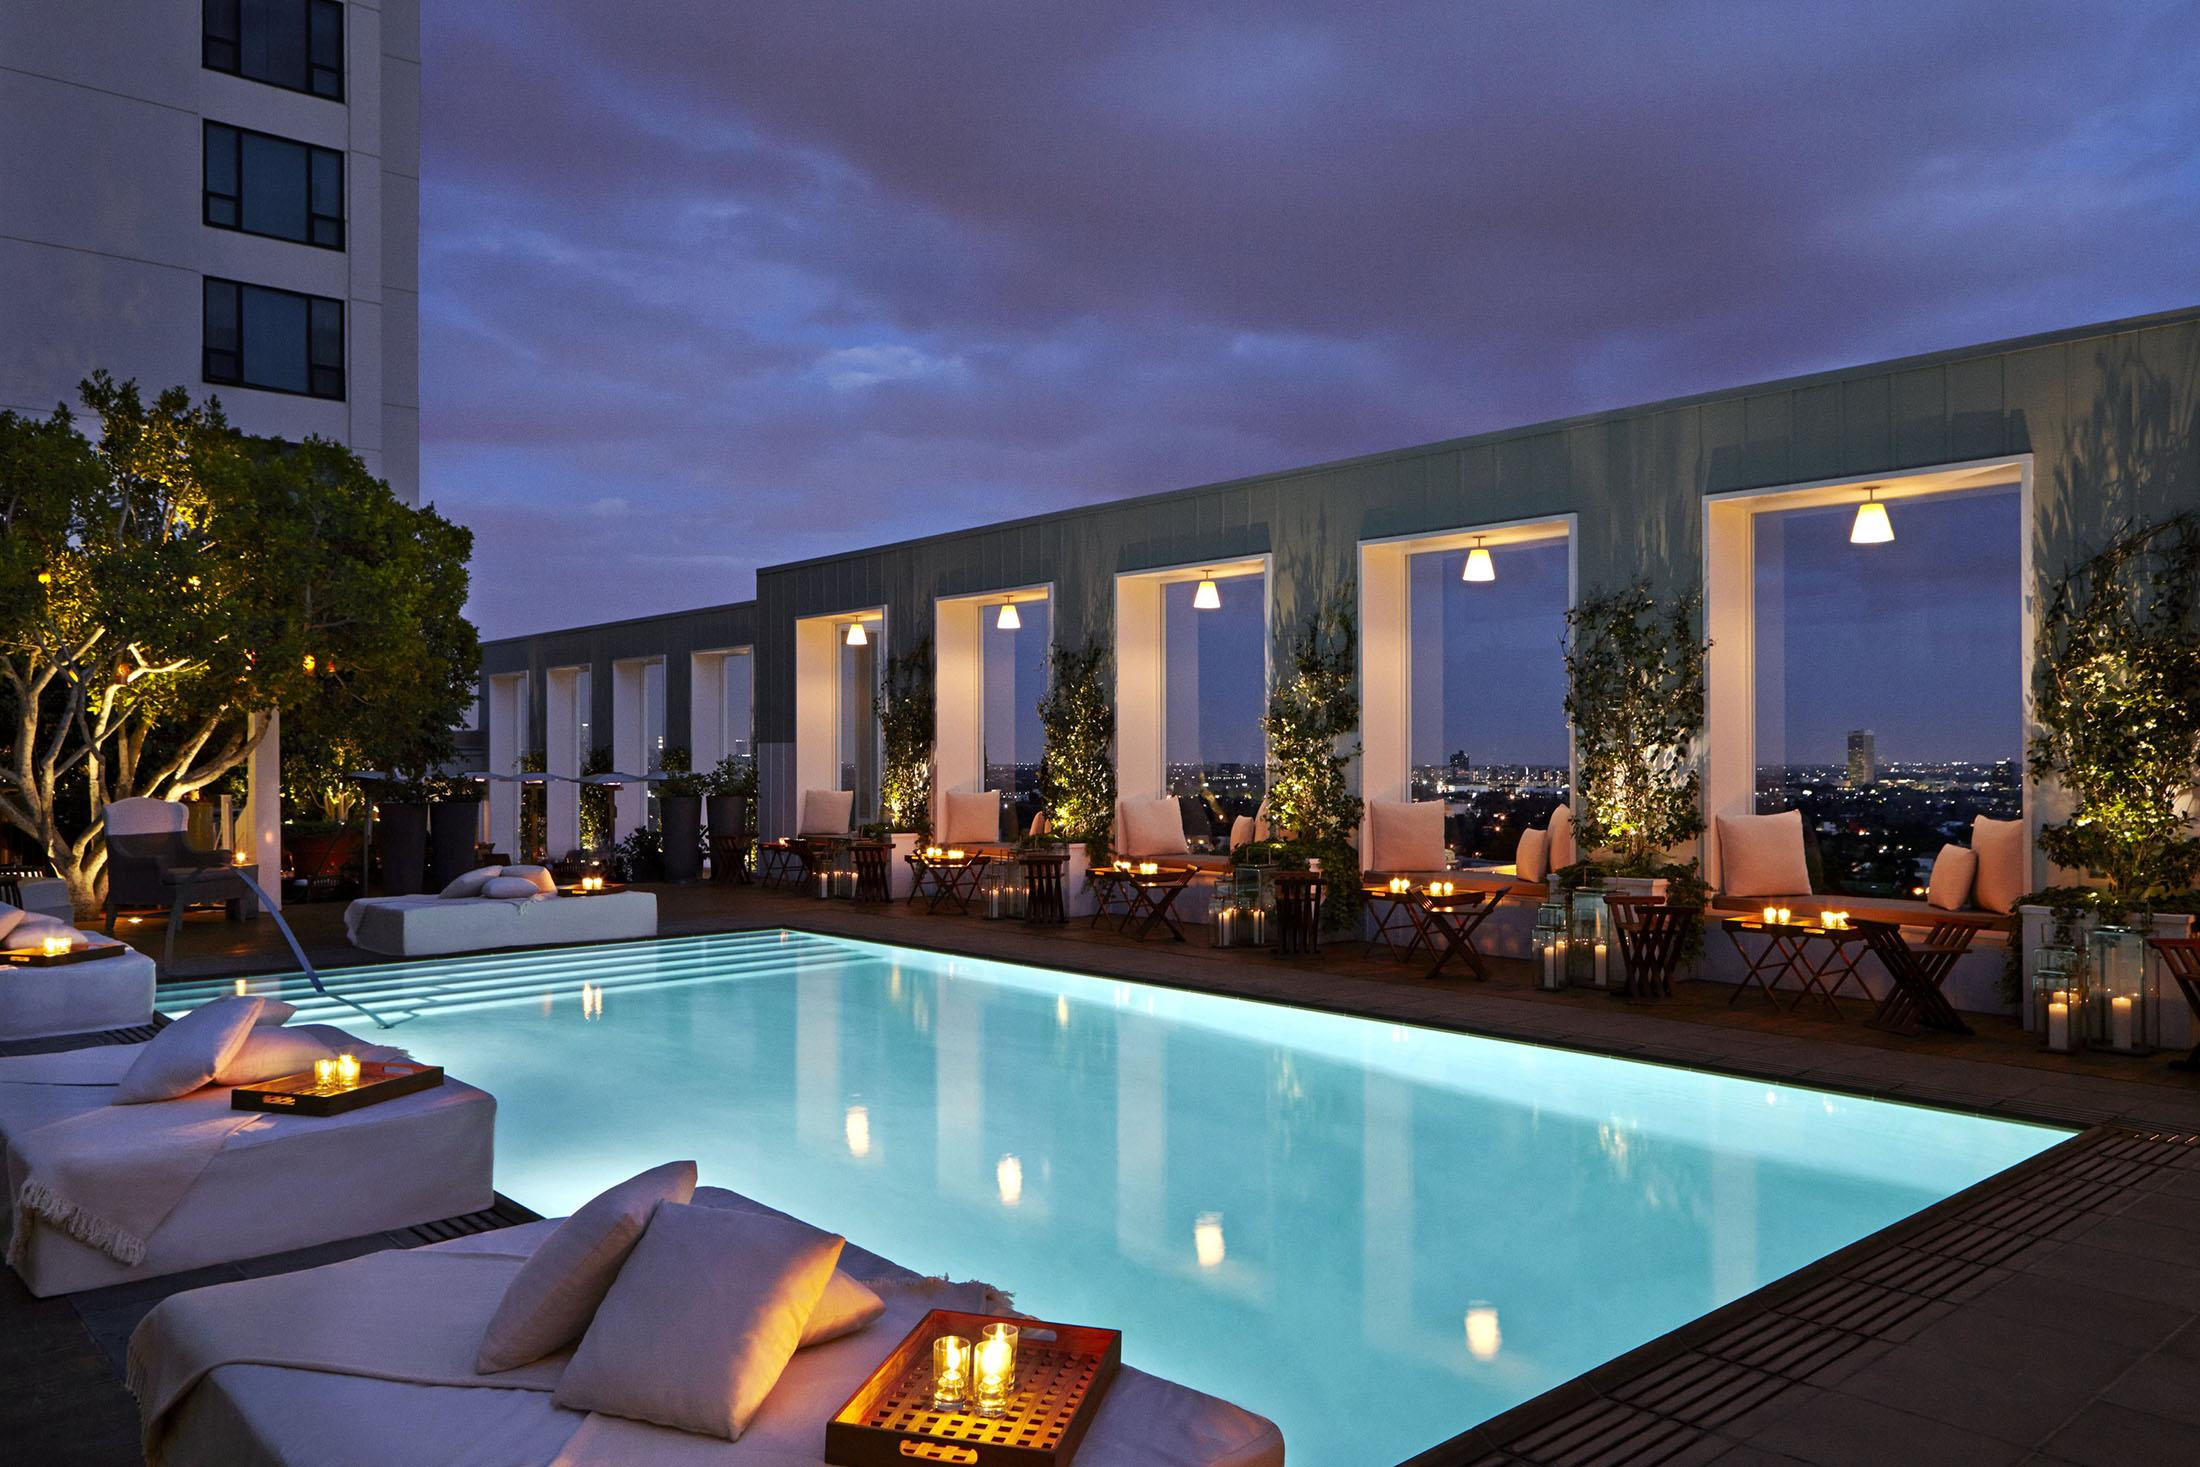 An outside pool at night.